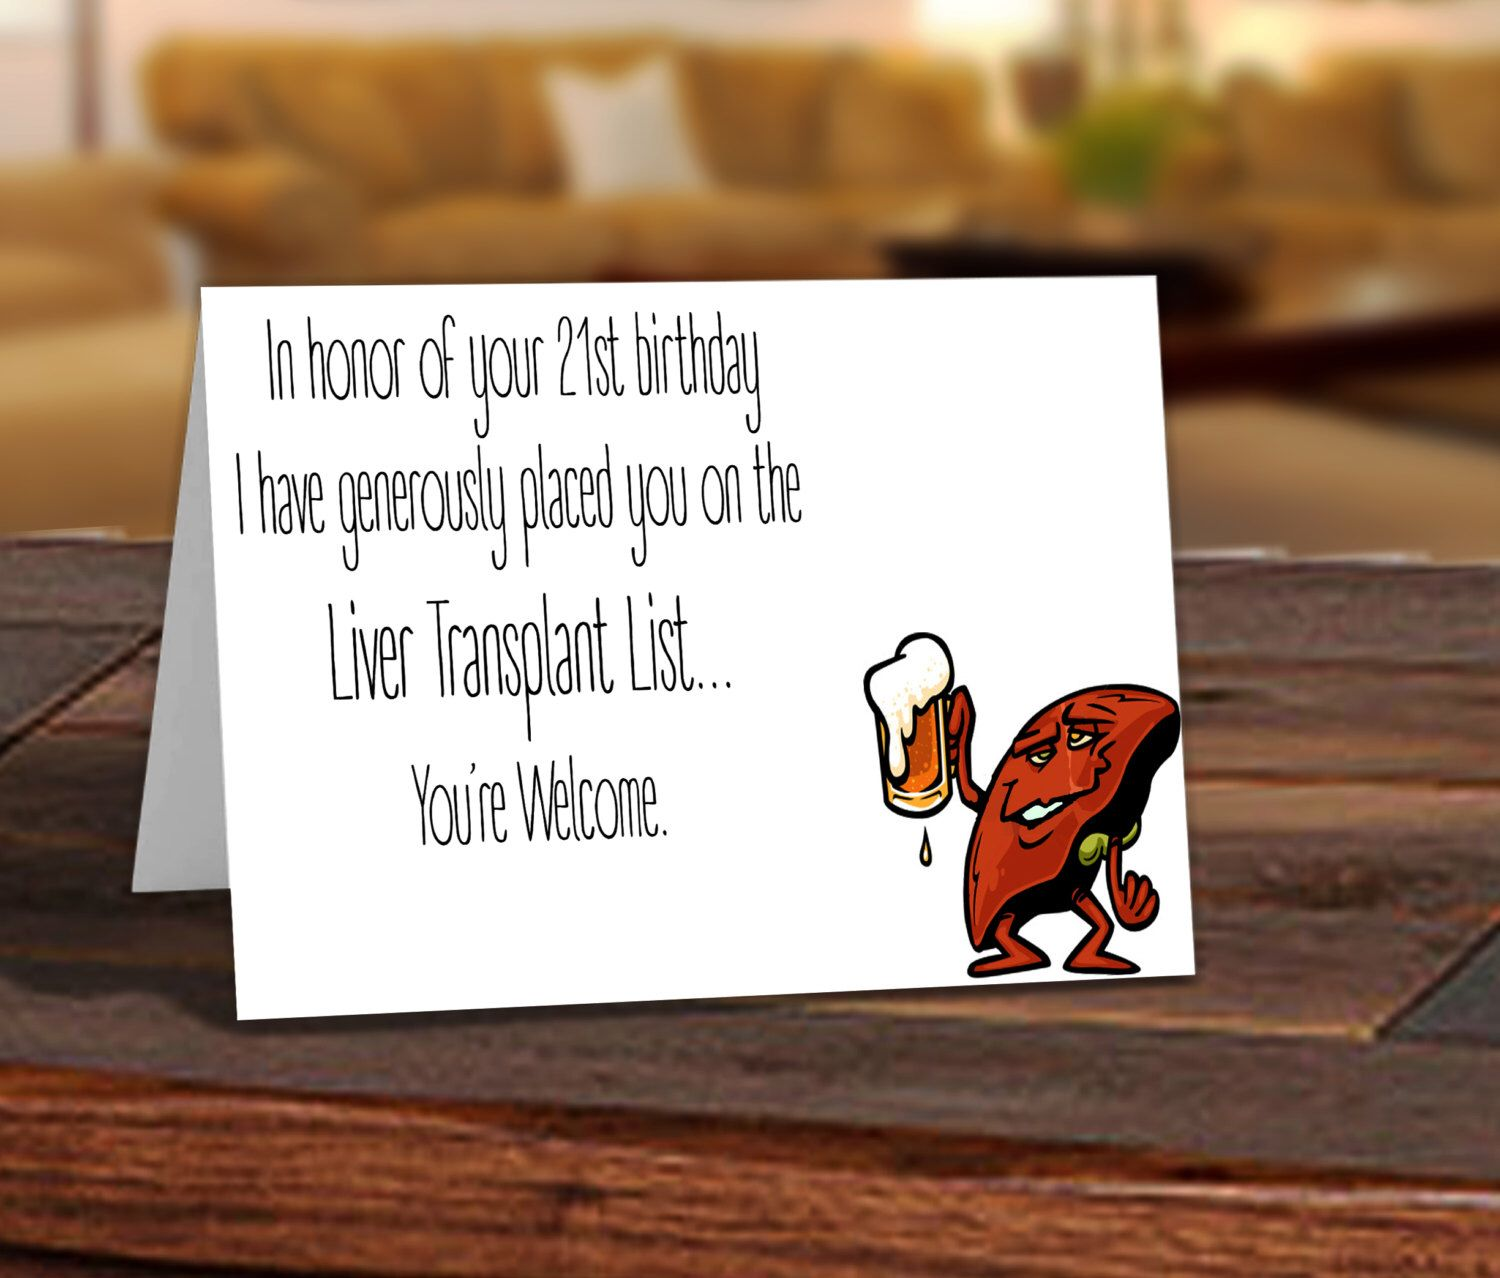 Funny adult birthday card 21 year old birthday card put you on funny adult birthday card 21 year old birthday card put you on the liver bookmarktalkfo Image collections